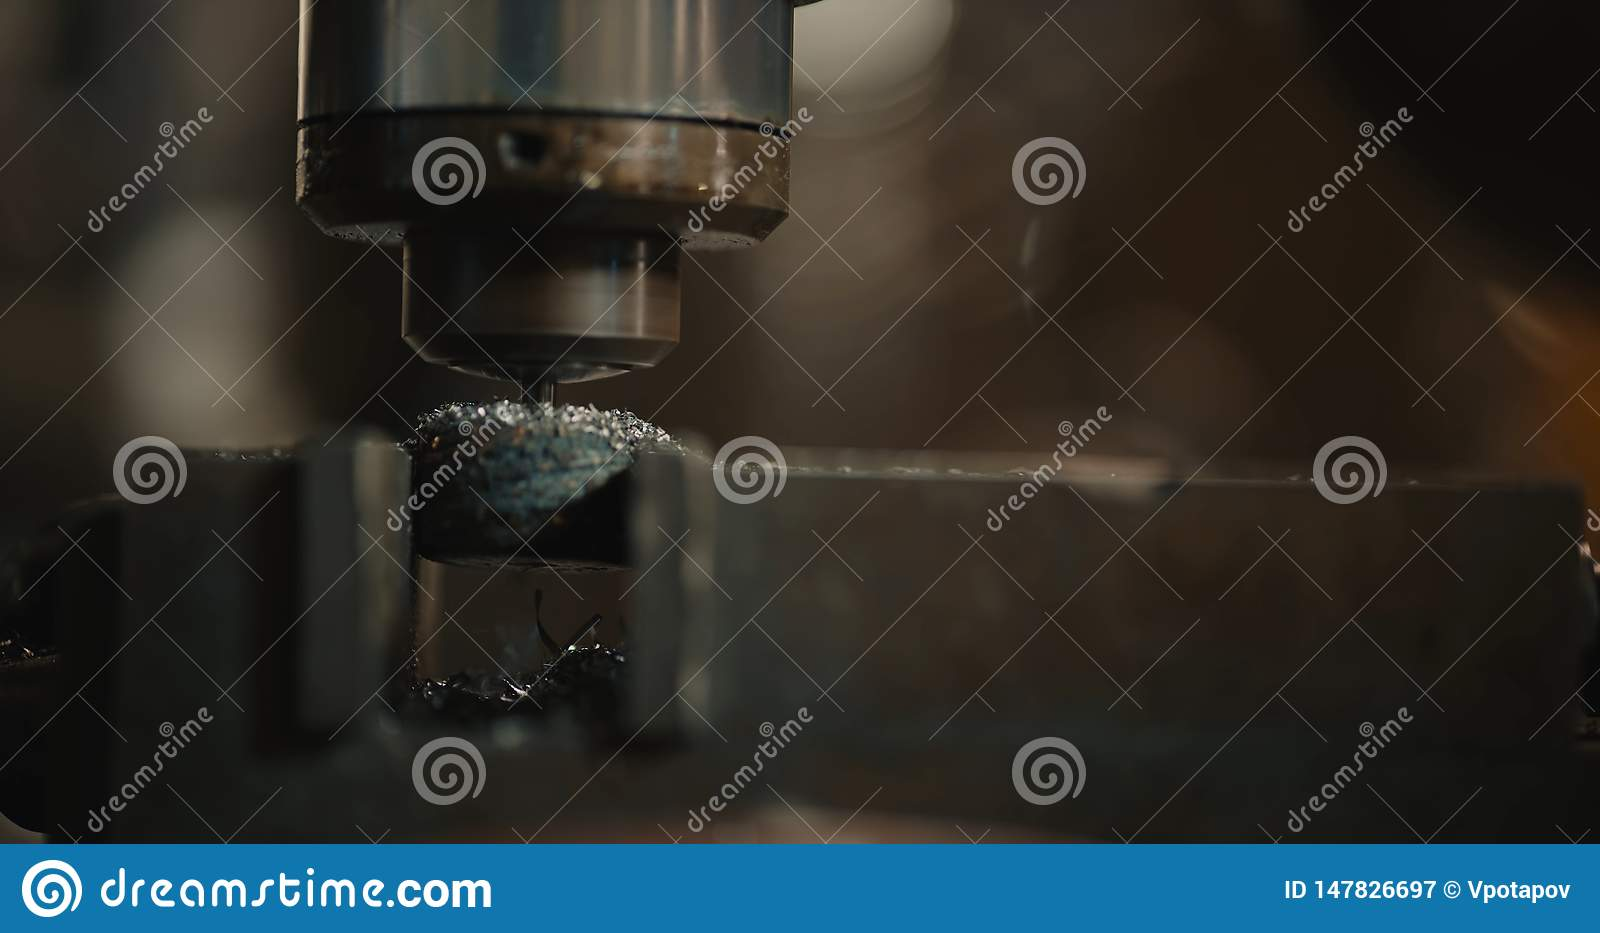 Drilling machine. The drill bit is installed in the drill chuck.